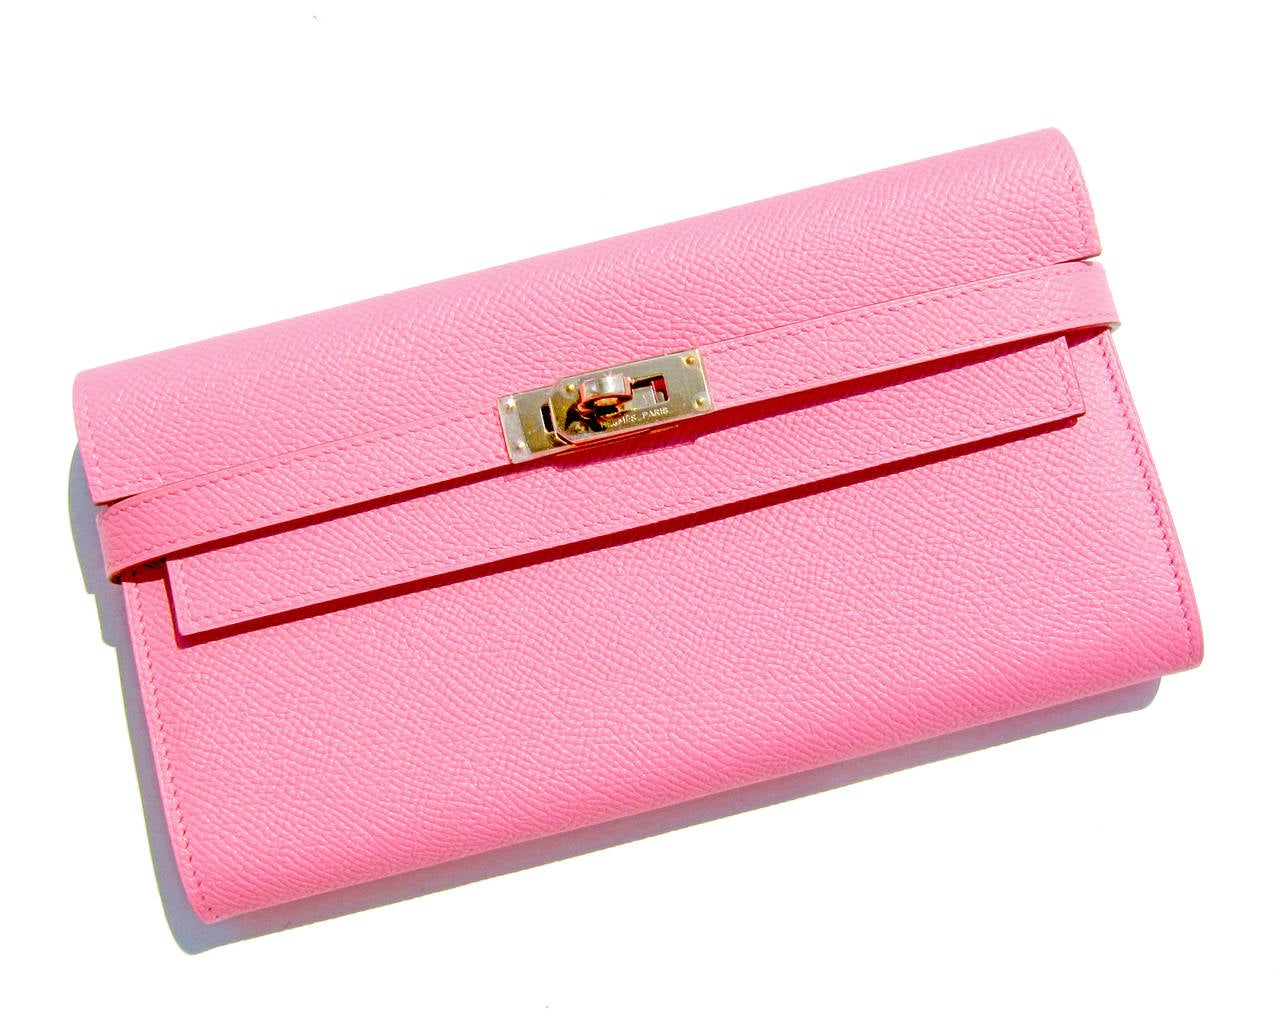 Hermes Rose Confetti Epsom Kelly Long Leather Wallet Permabrass Hardware 2